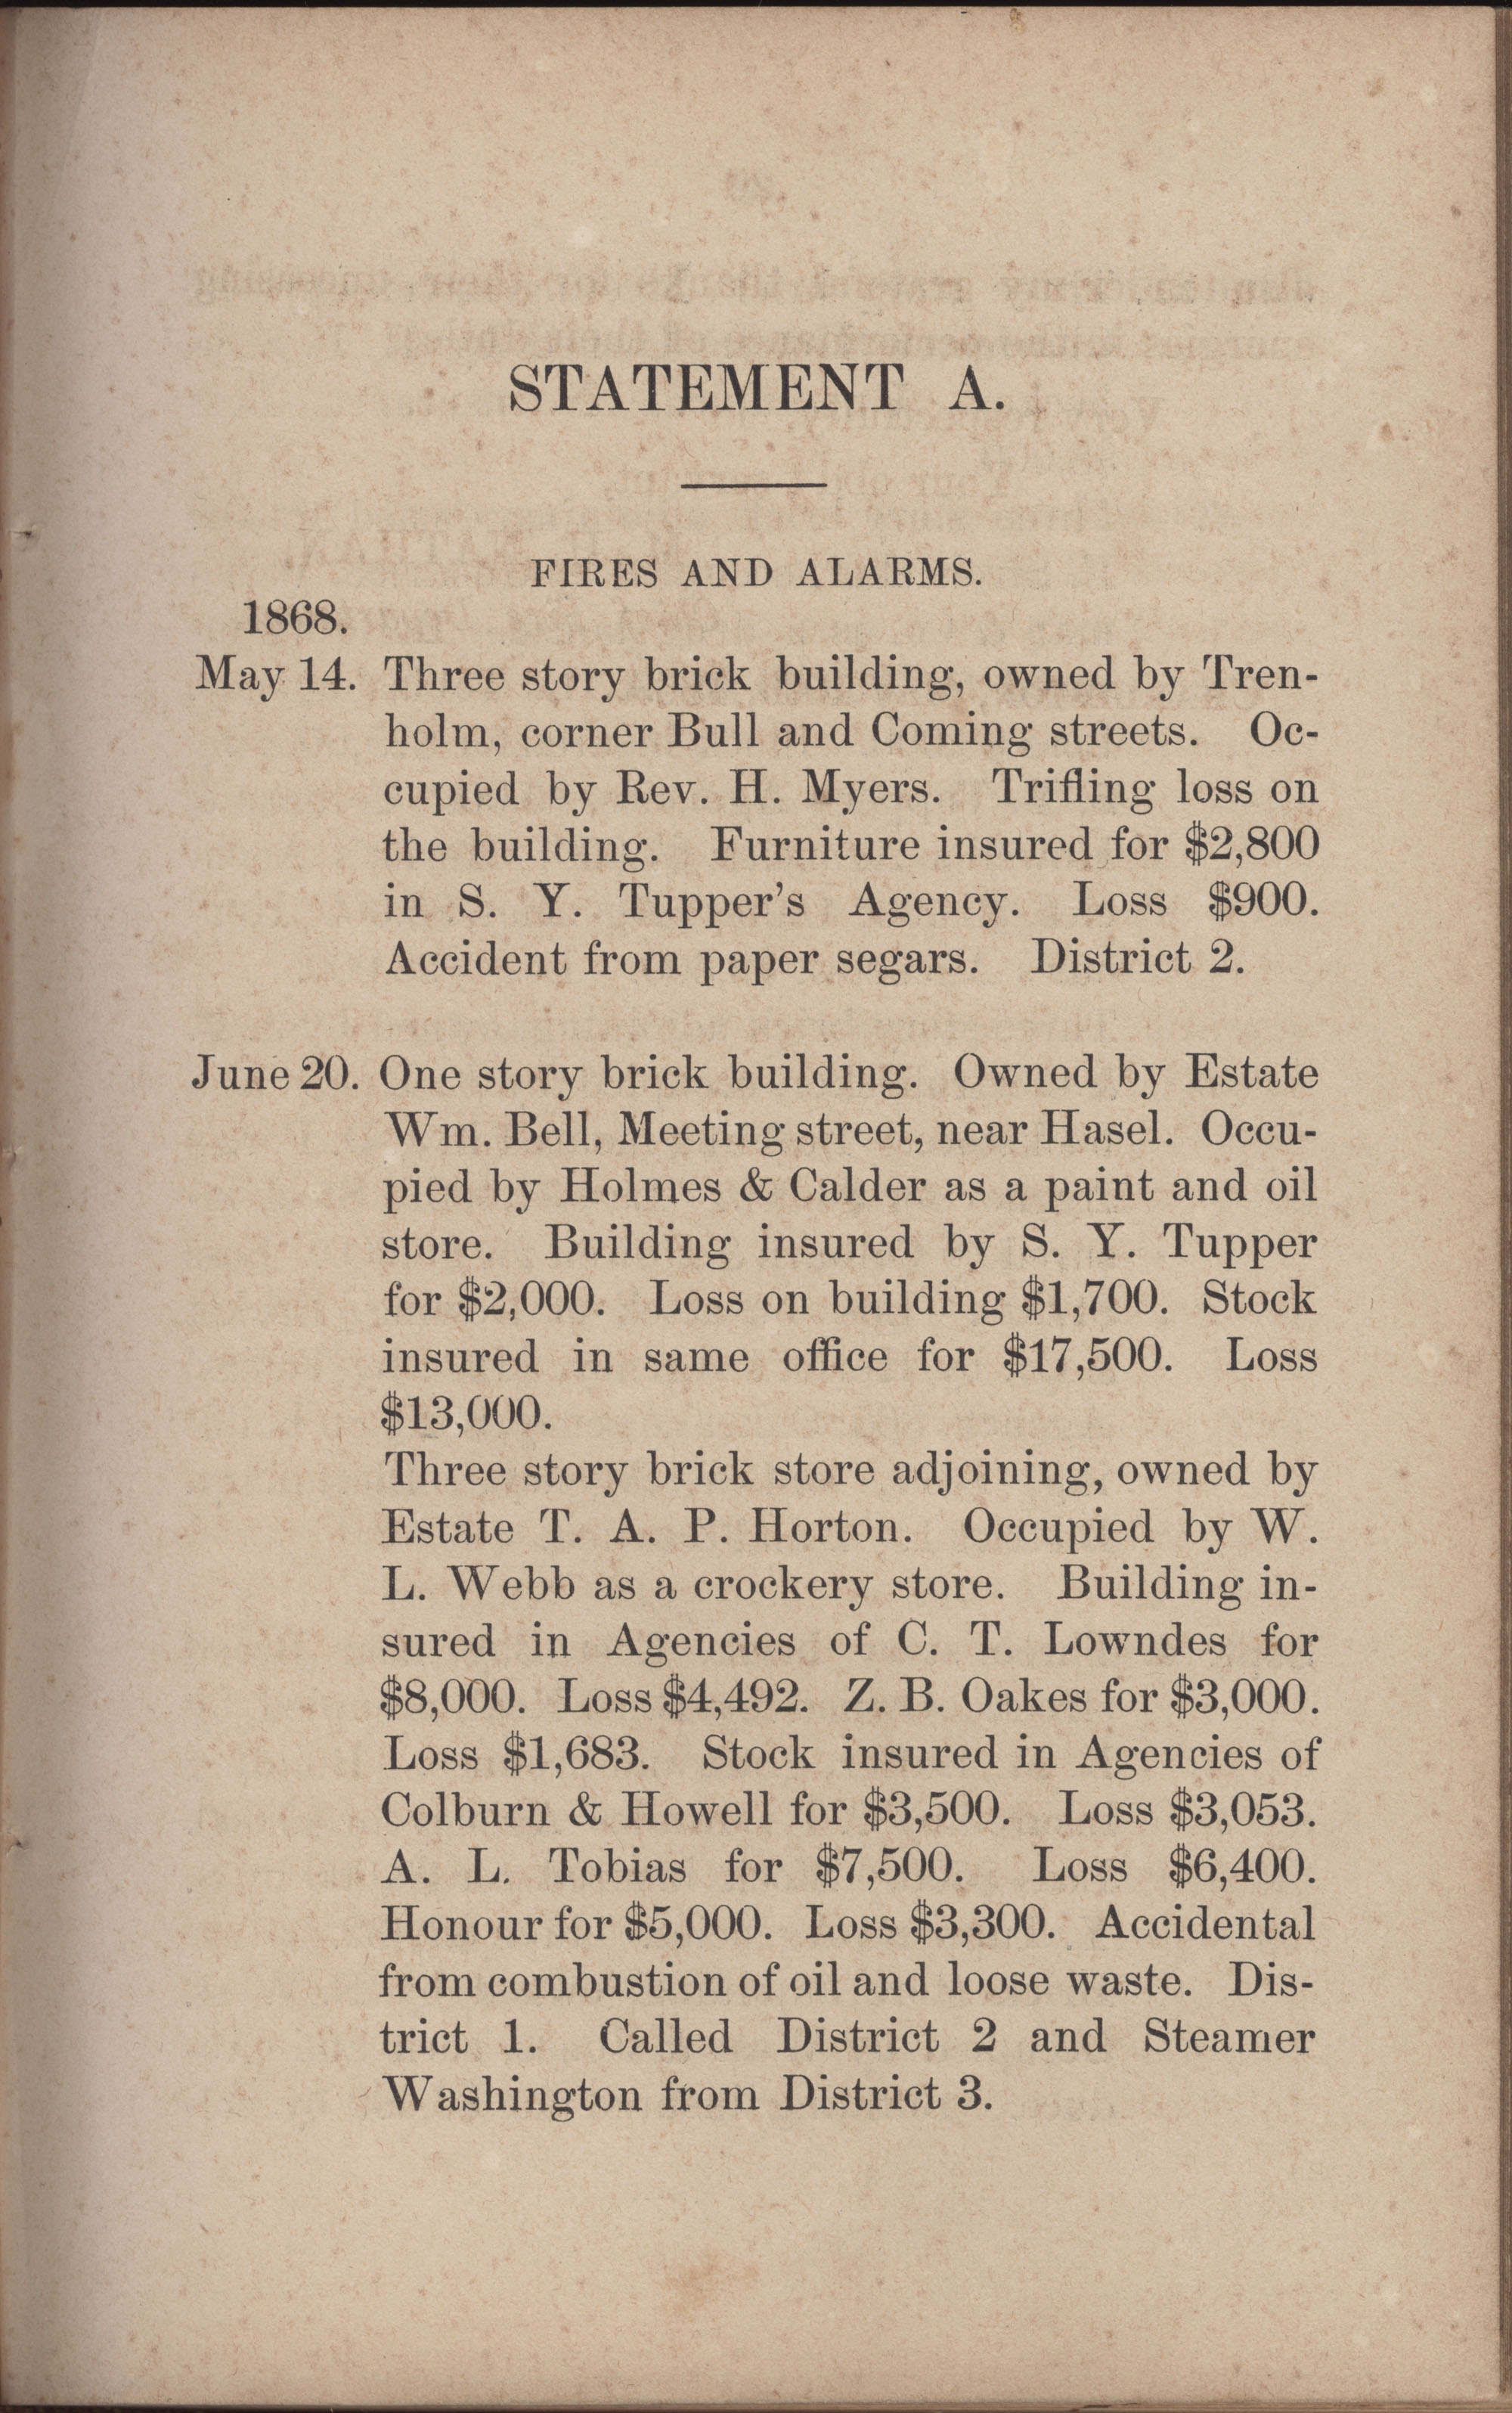 Annual Report of the Chief of the Fire Department of the City of Charleston, page 248